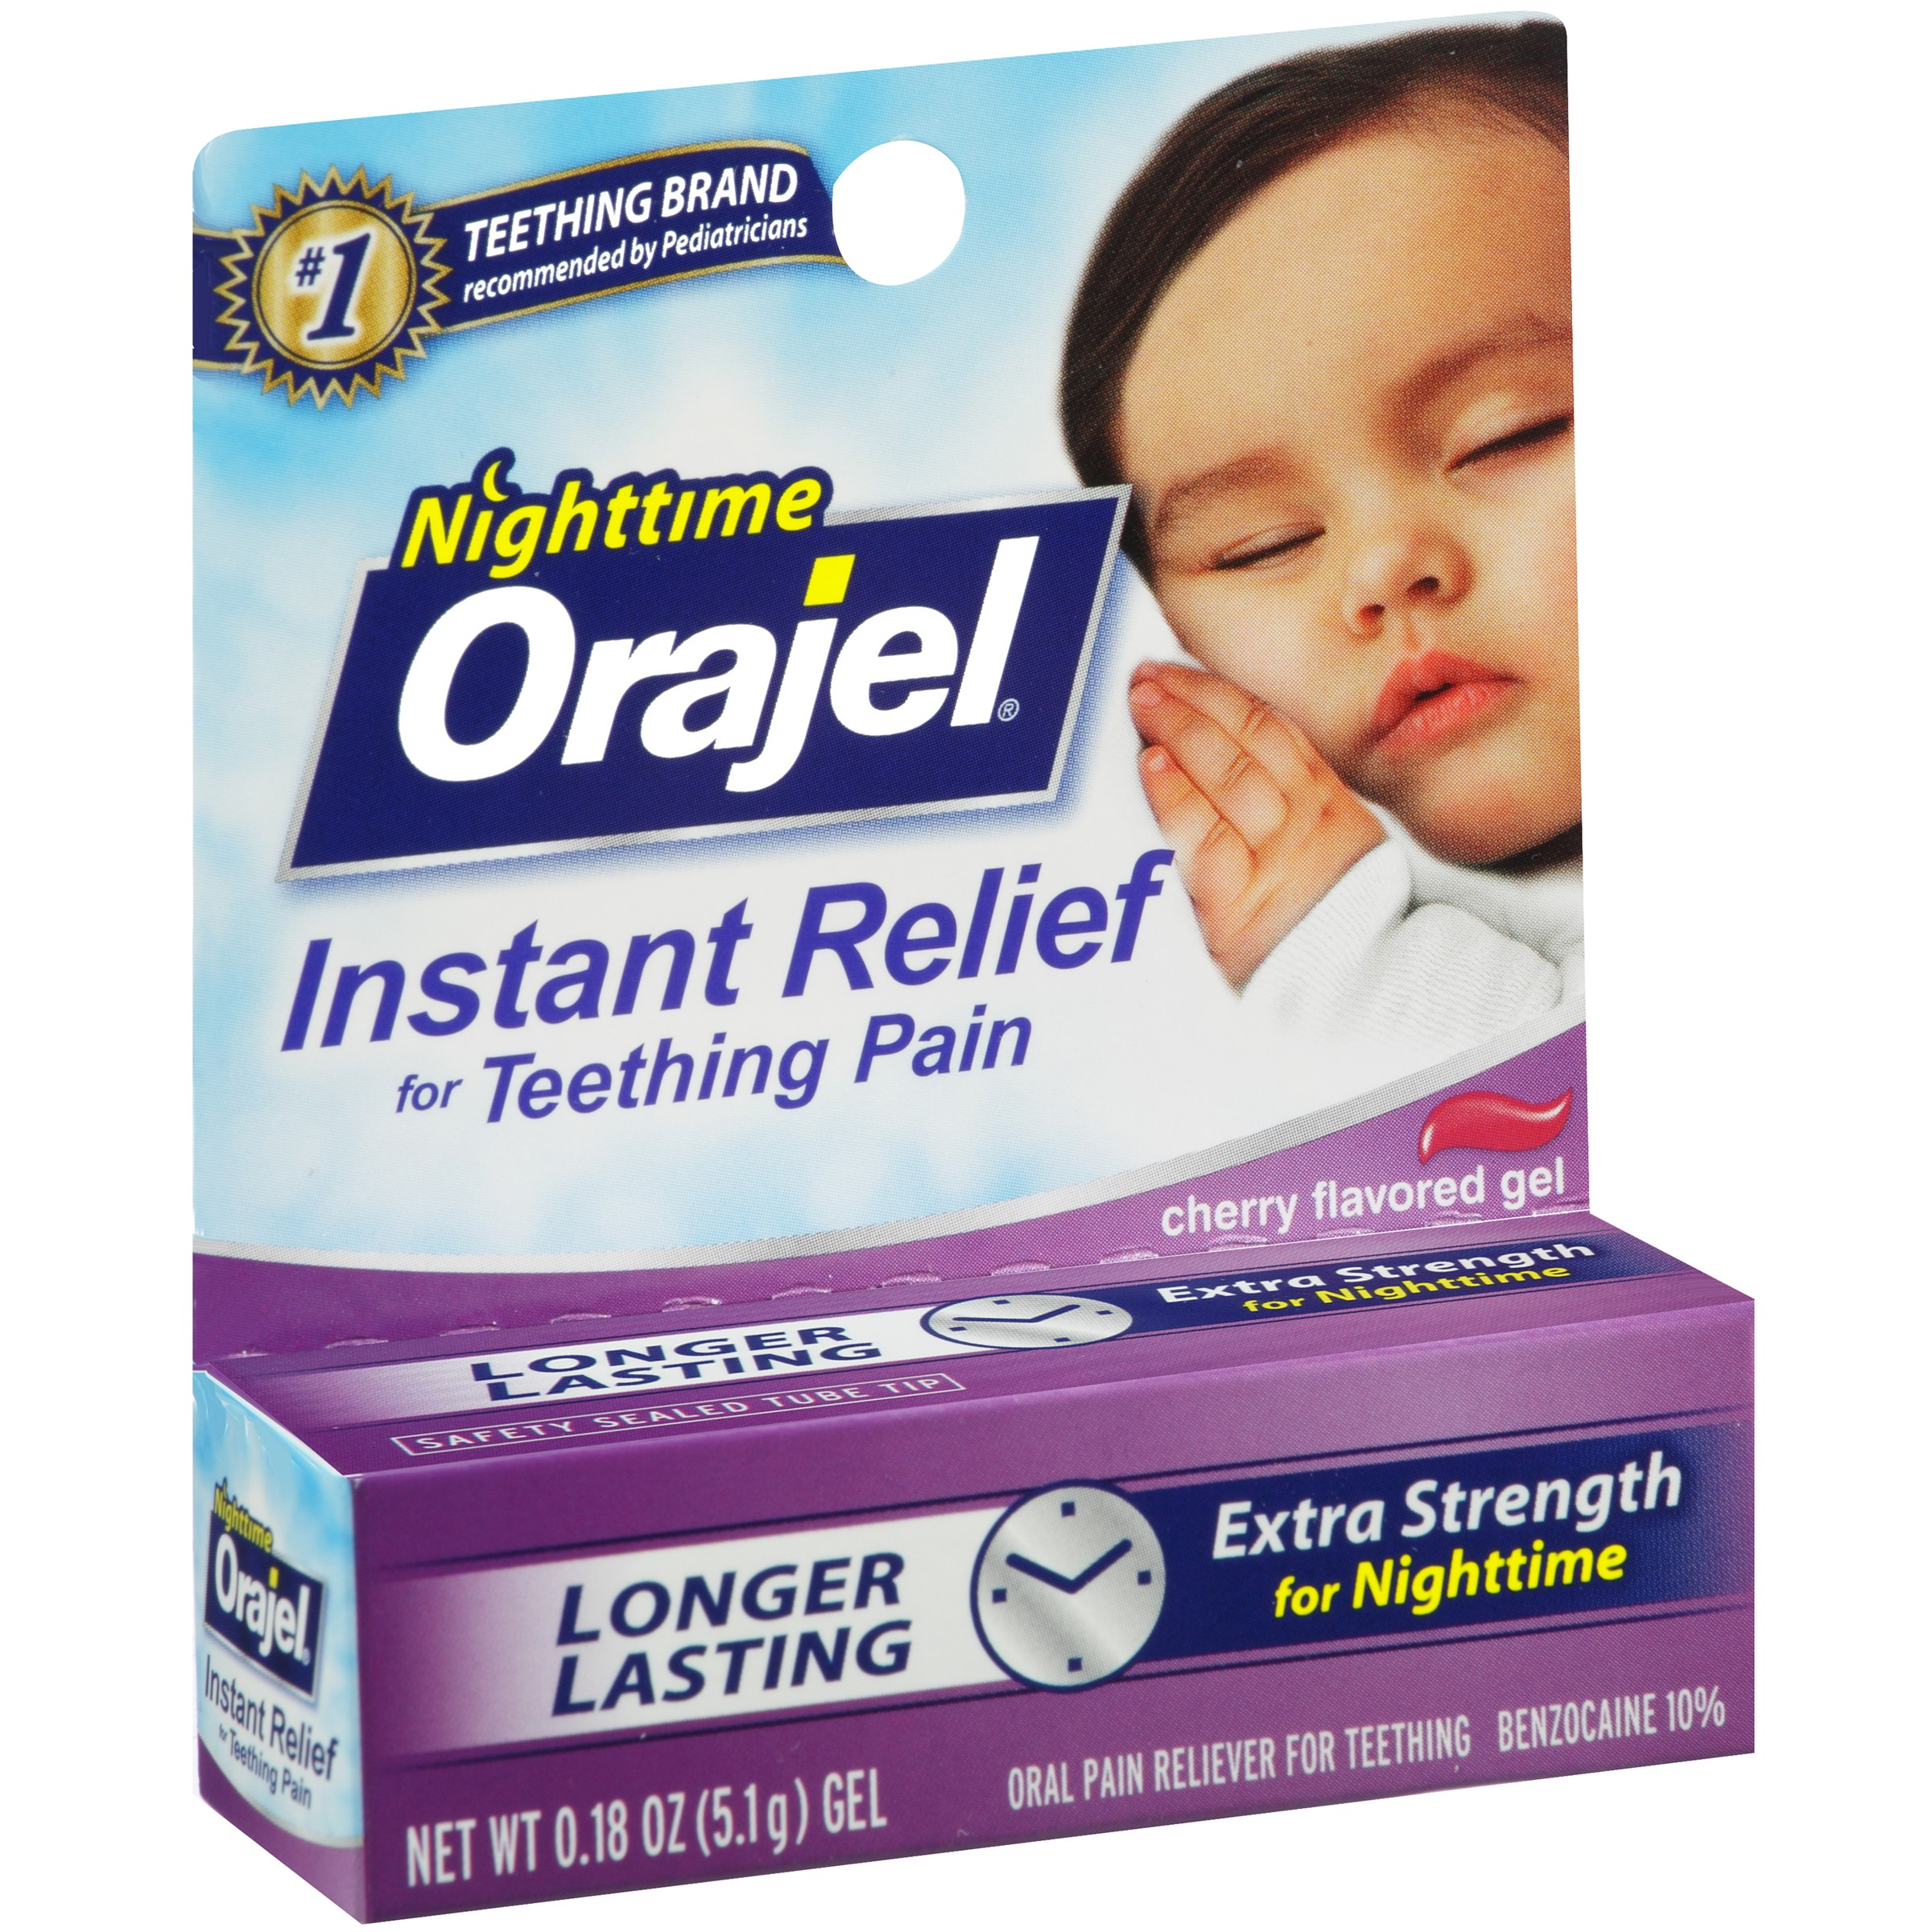 Orajel Nighttime Teething Pain Relief Gel, Cherry, 0.18 Oz